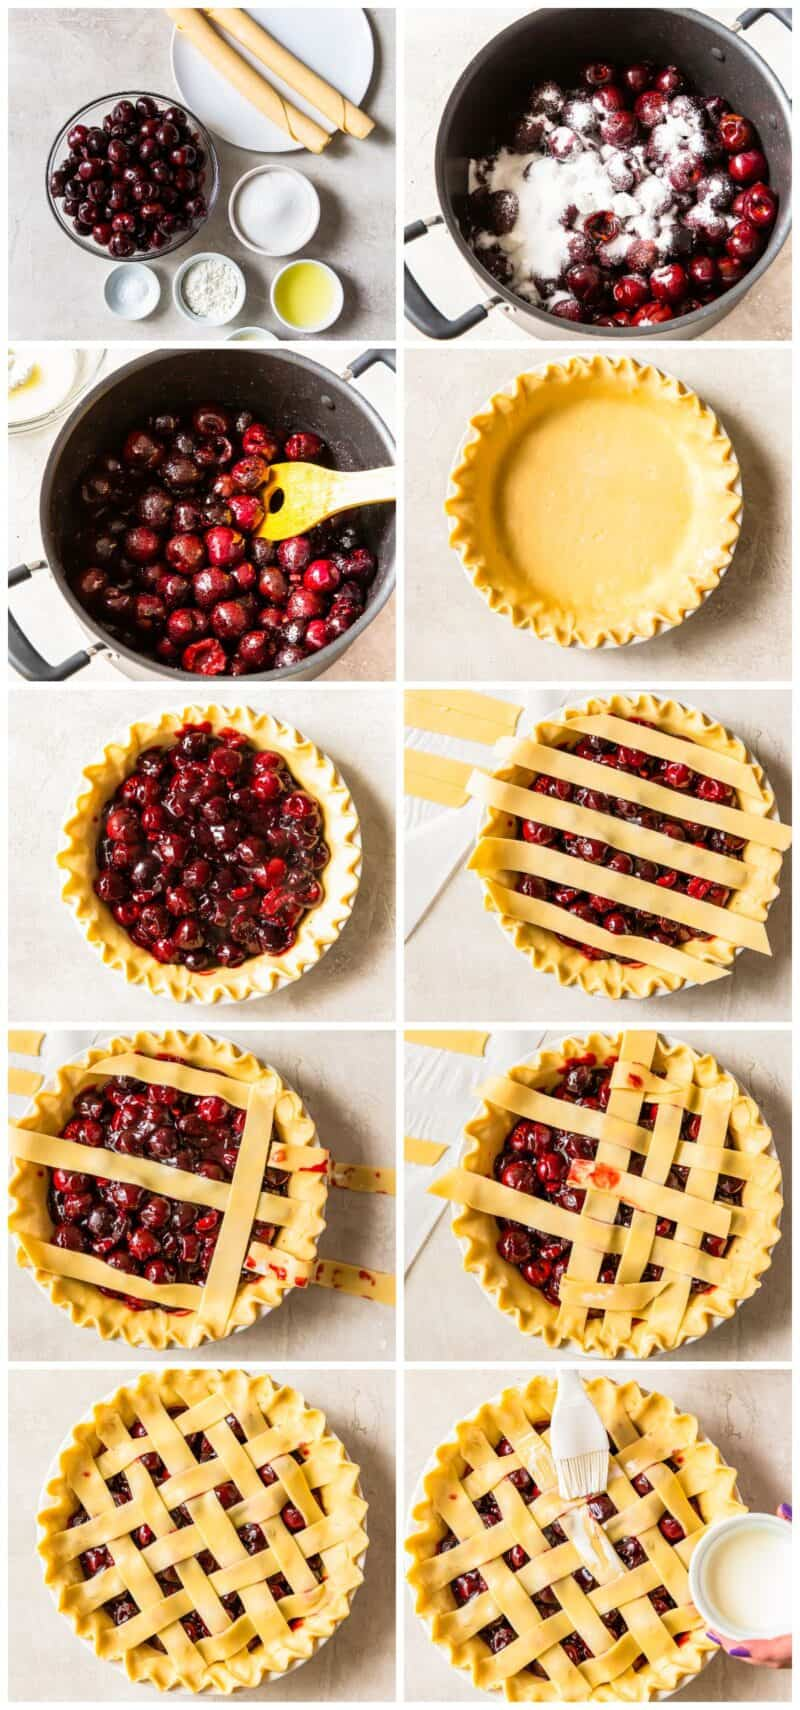 step by step photos for how to make lattice cherry pie